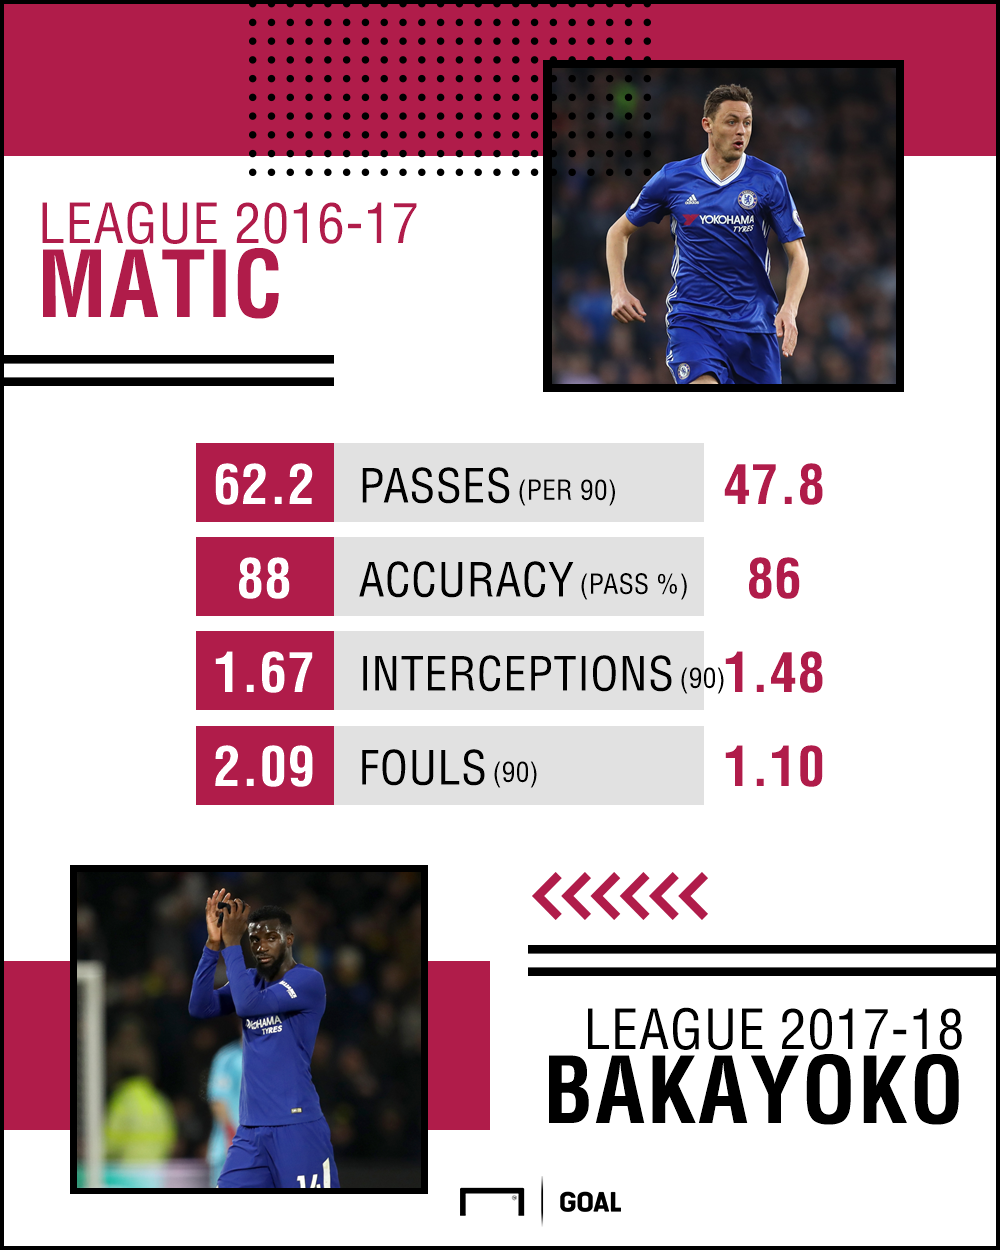 Matic-Bakayoko comparison